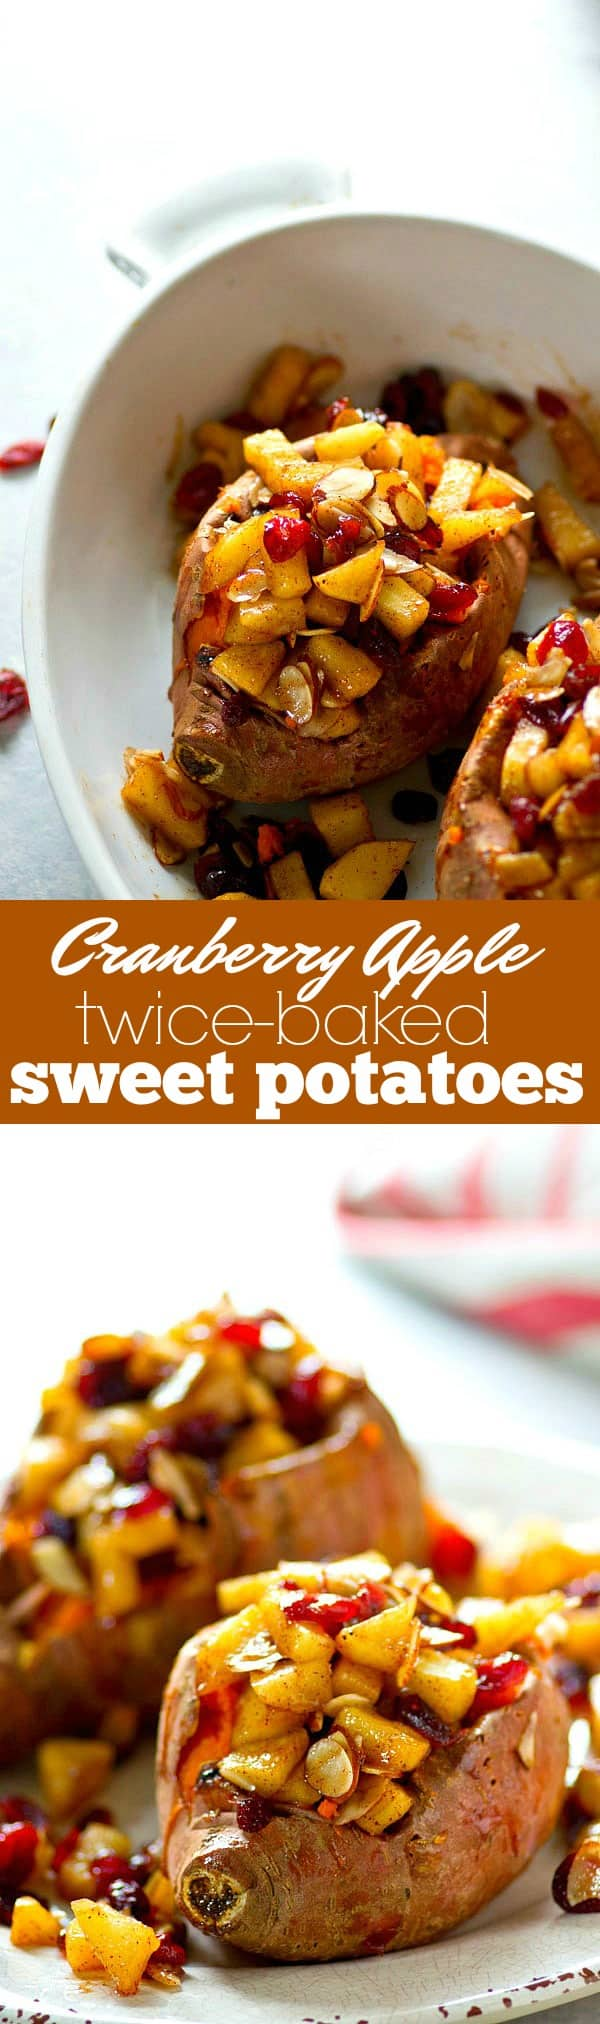 Stuffed with sweet caramelized apples and cranberries, these twice-baked sweet potatoes are a SUPER easy Thanksgiving side and so much better than any casserole!